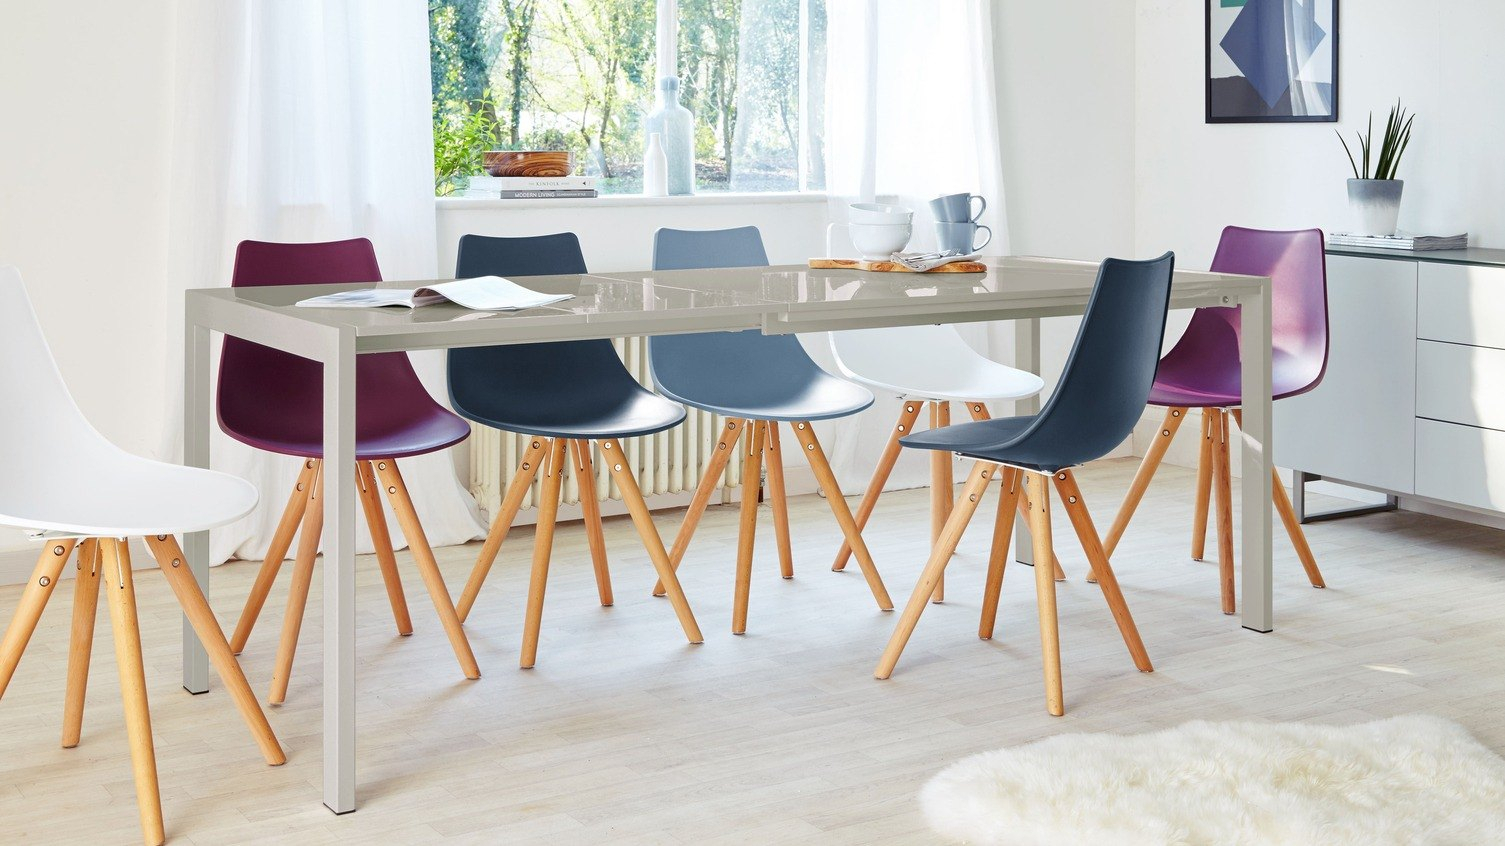 Extending Dining Tables | Danetti Lifestyle With Most Current Black Wash Banks Extending Dining Tables (View 17 of 25)